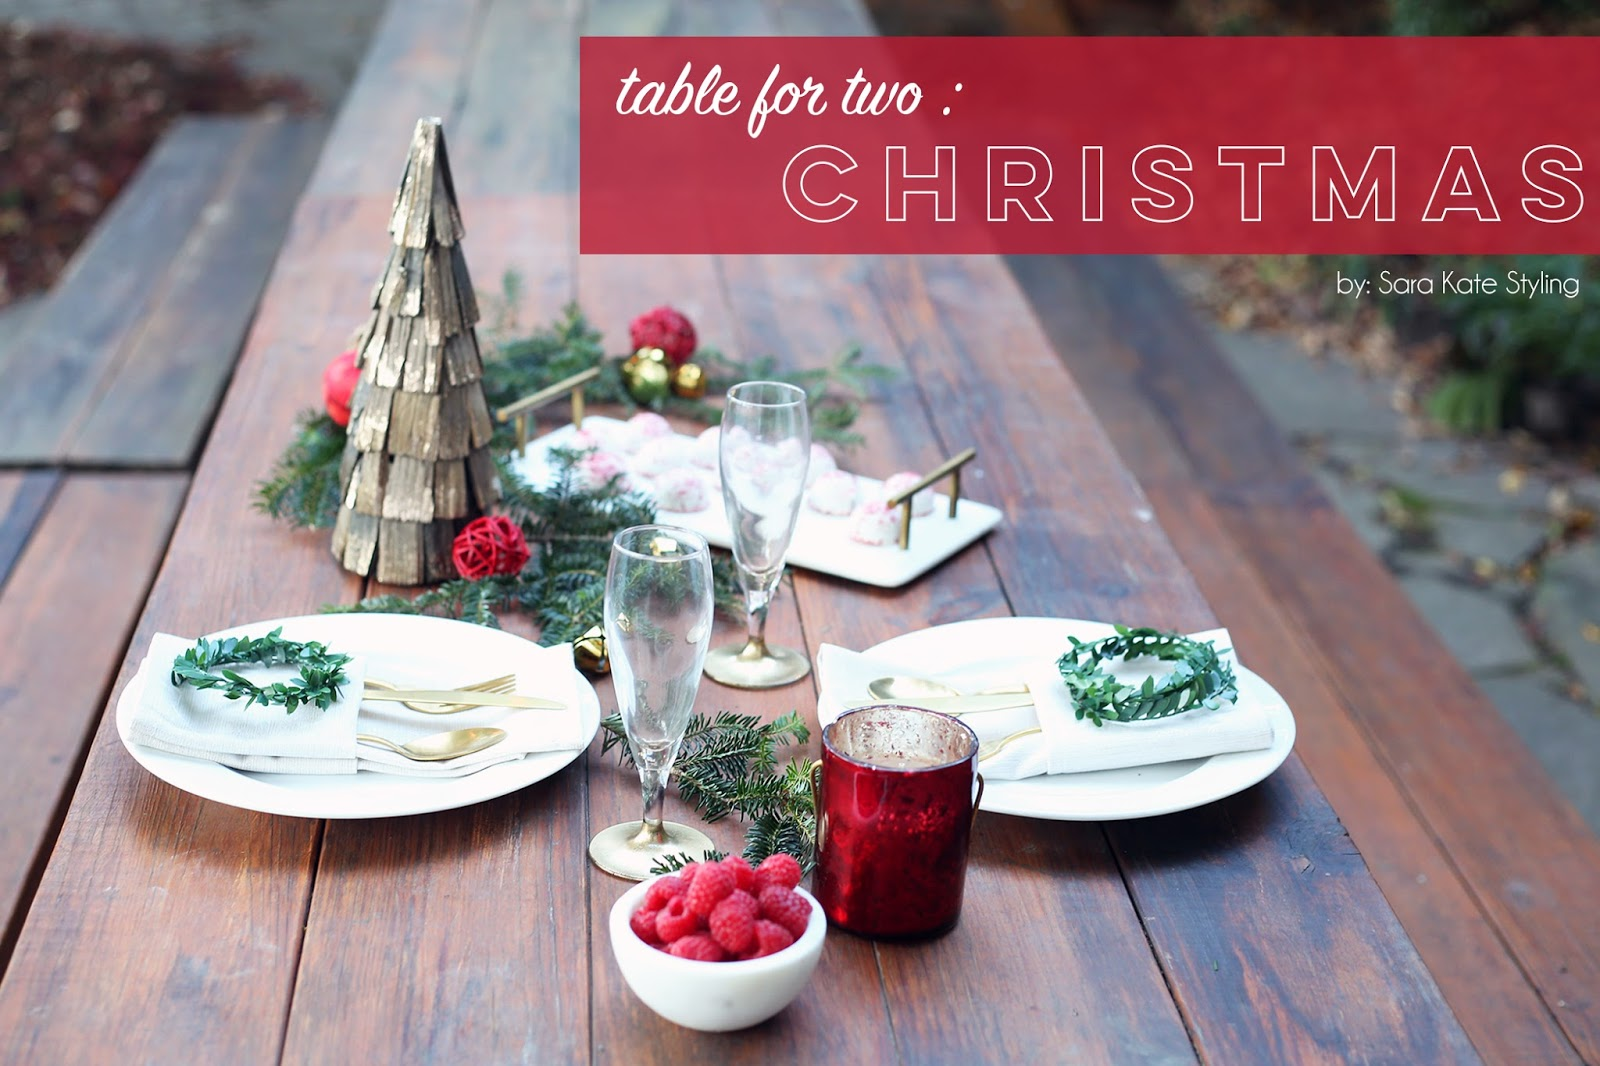 Table for Two: Christmas